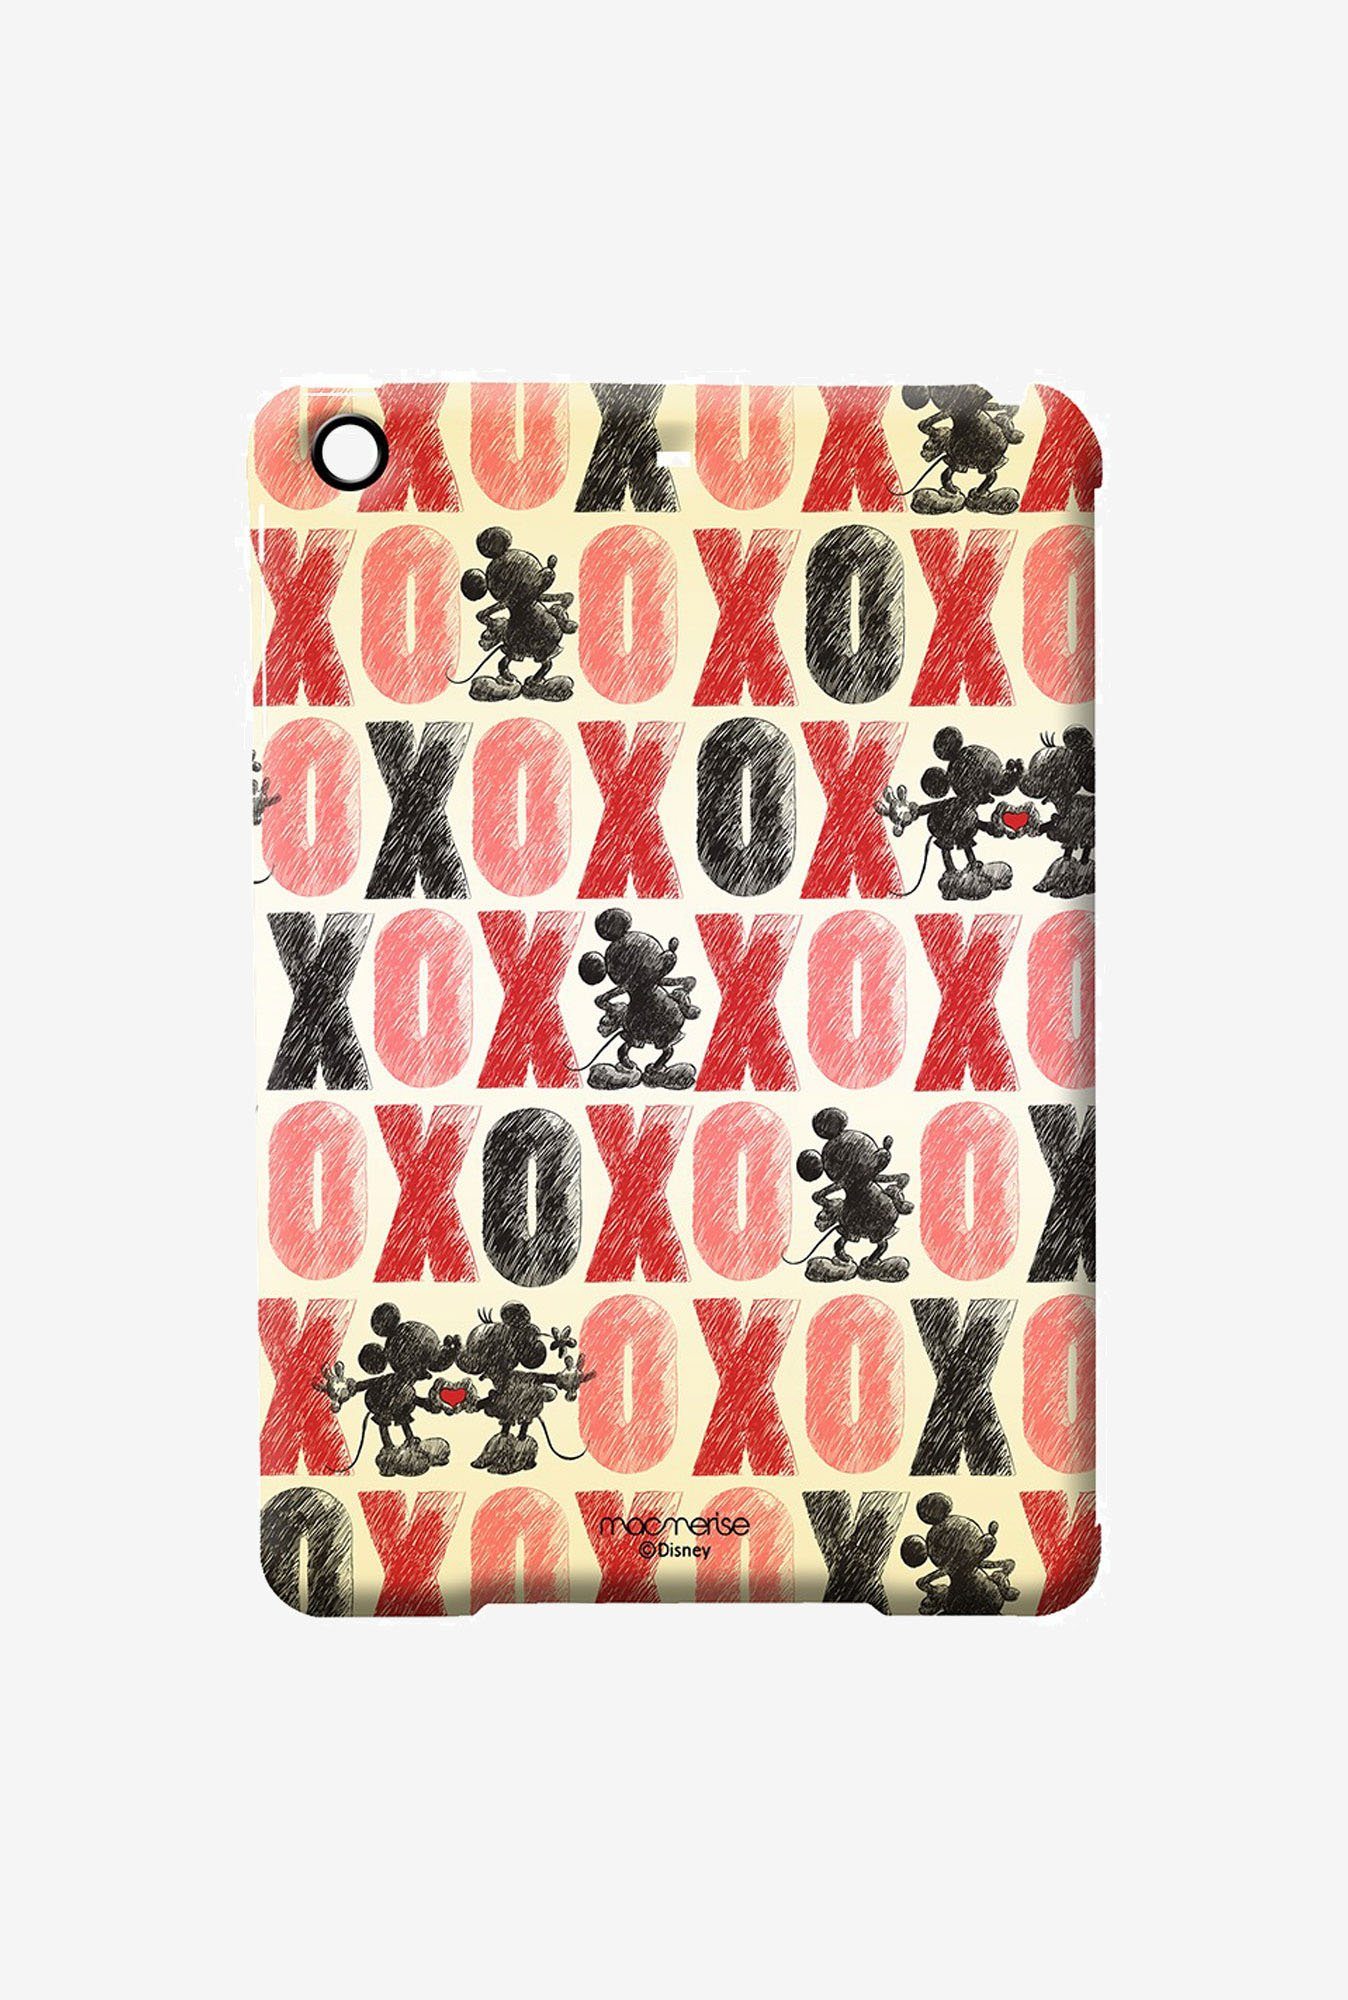 Macmerise XOXO Mashup Pro Case for iPad Air 2